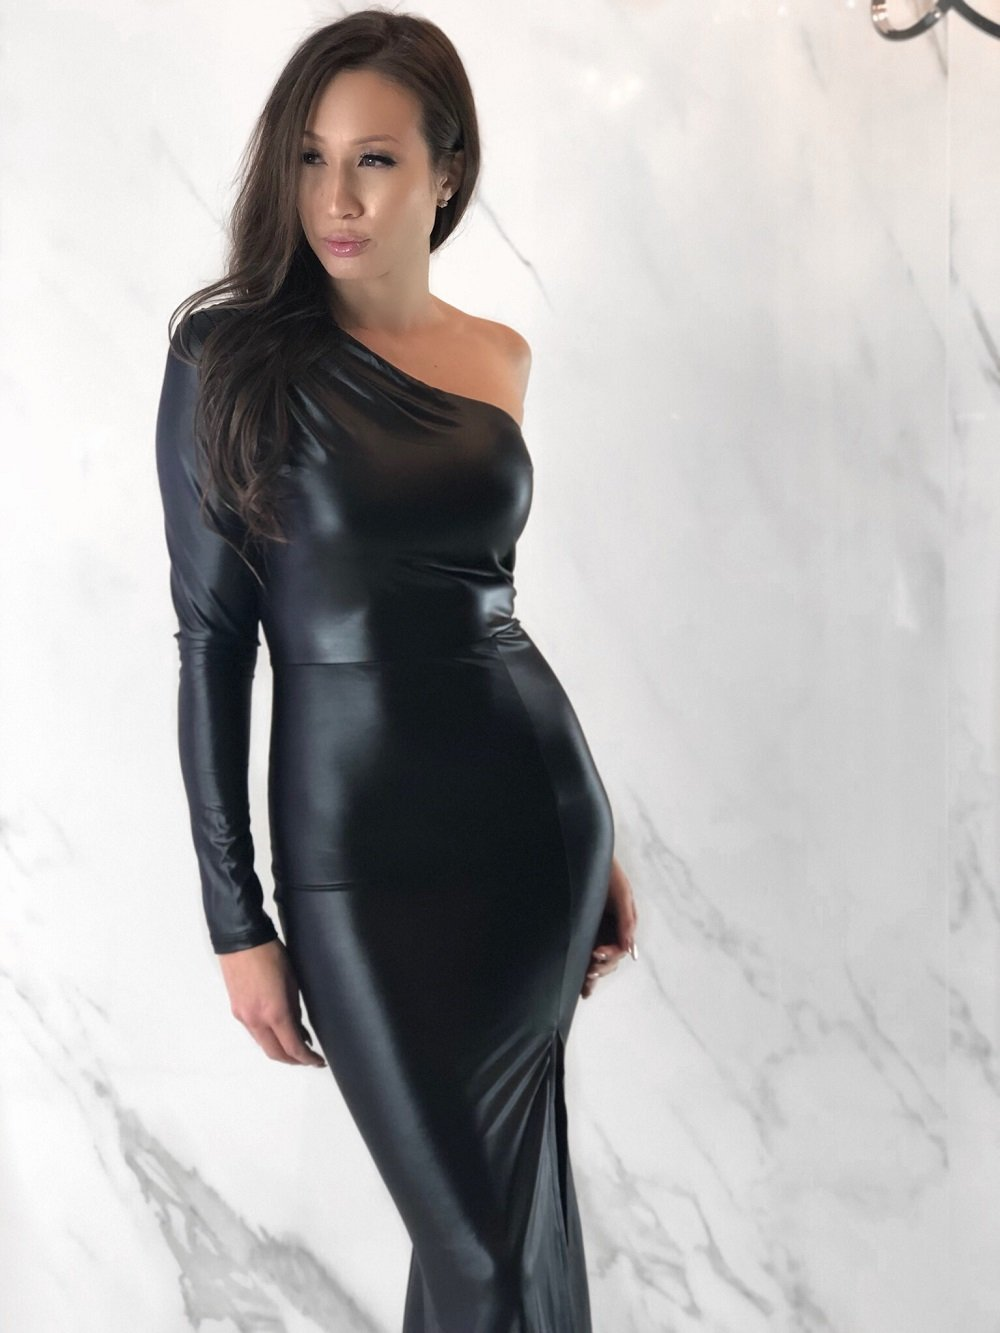 Caryssa Black Dress, Women's Black Dresses